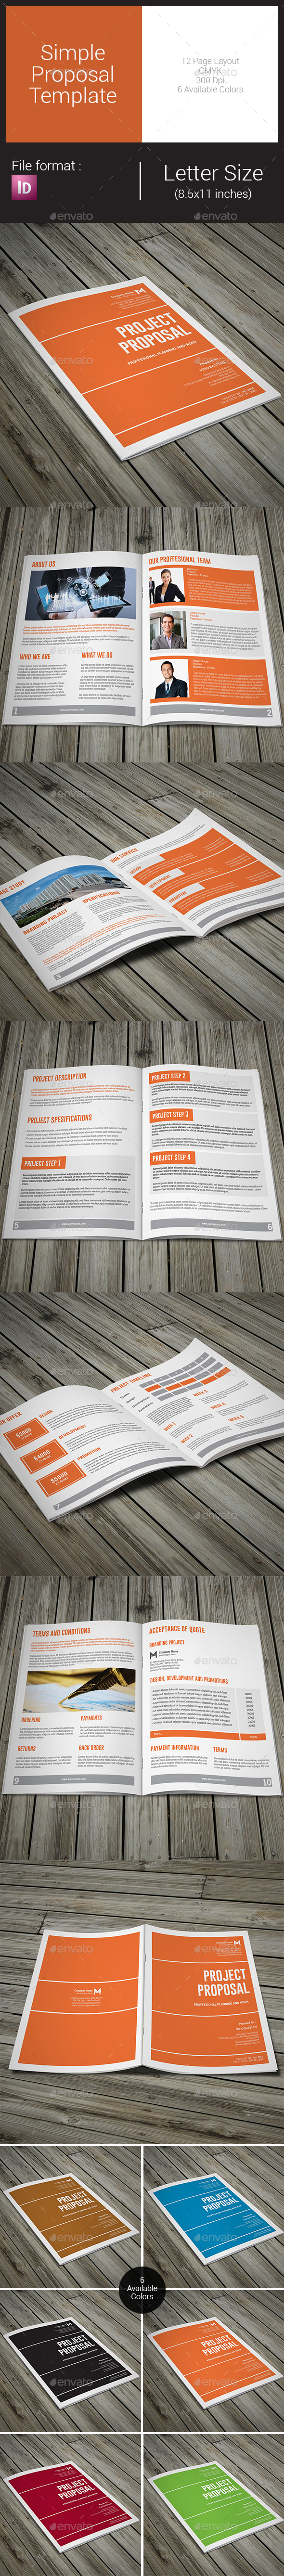 Simple Proposal Template - Proposals & Invoices Stationery